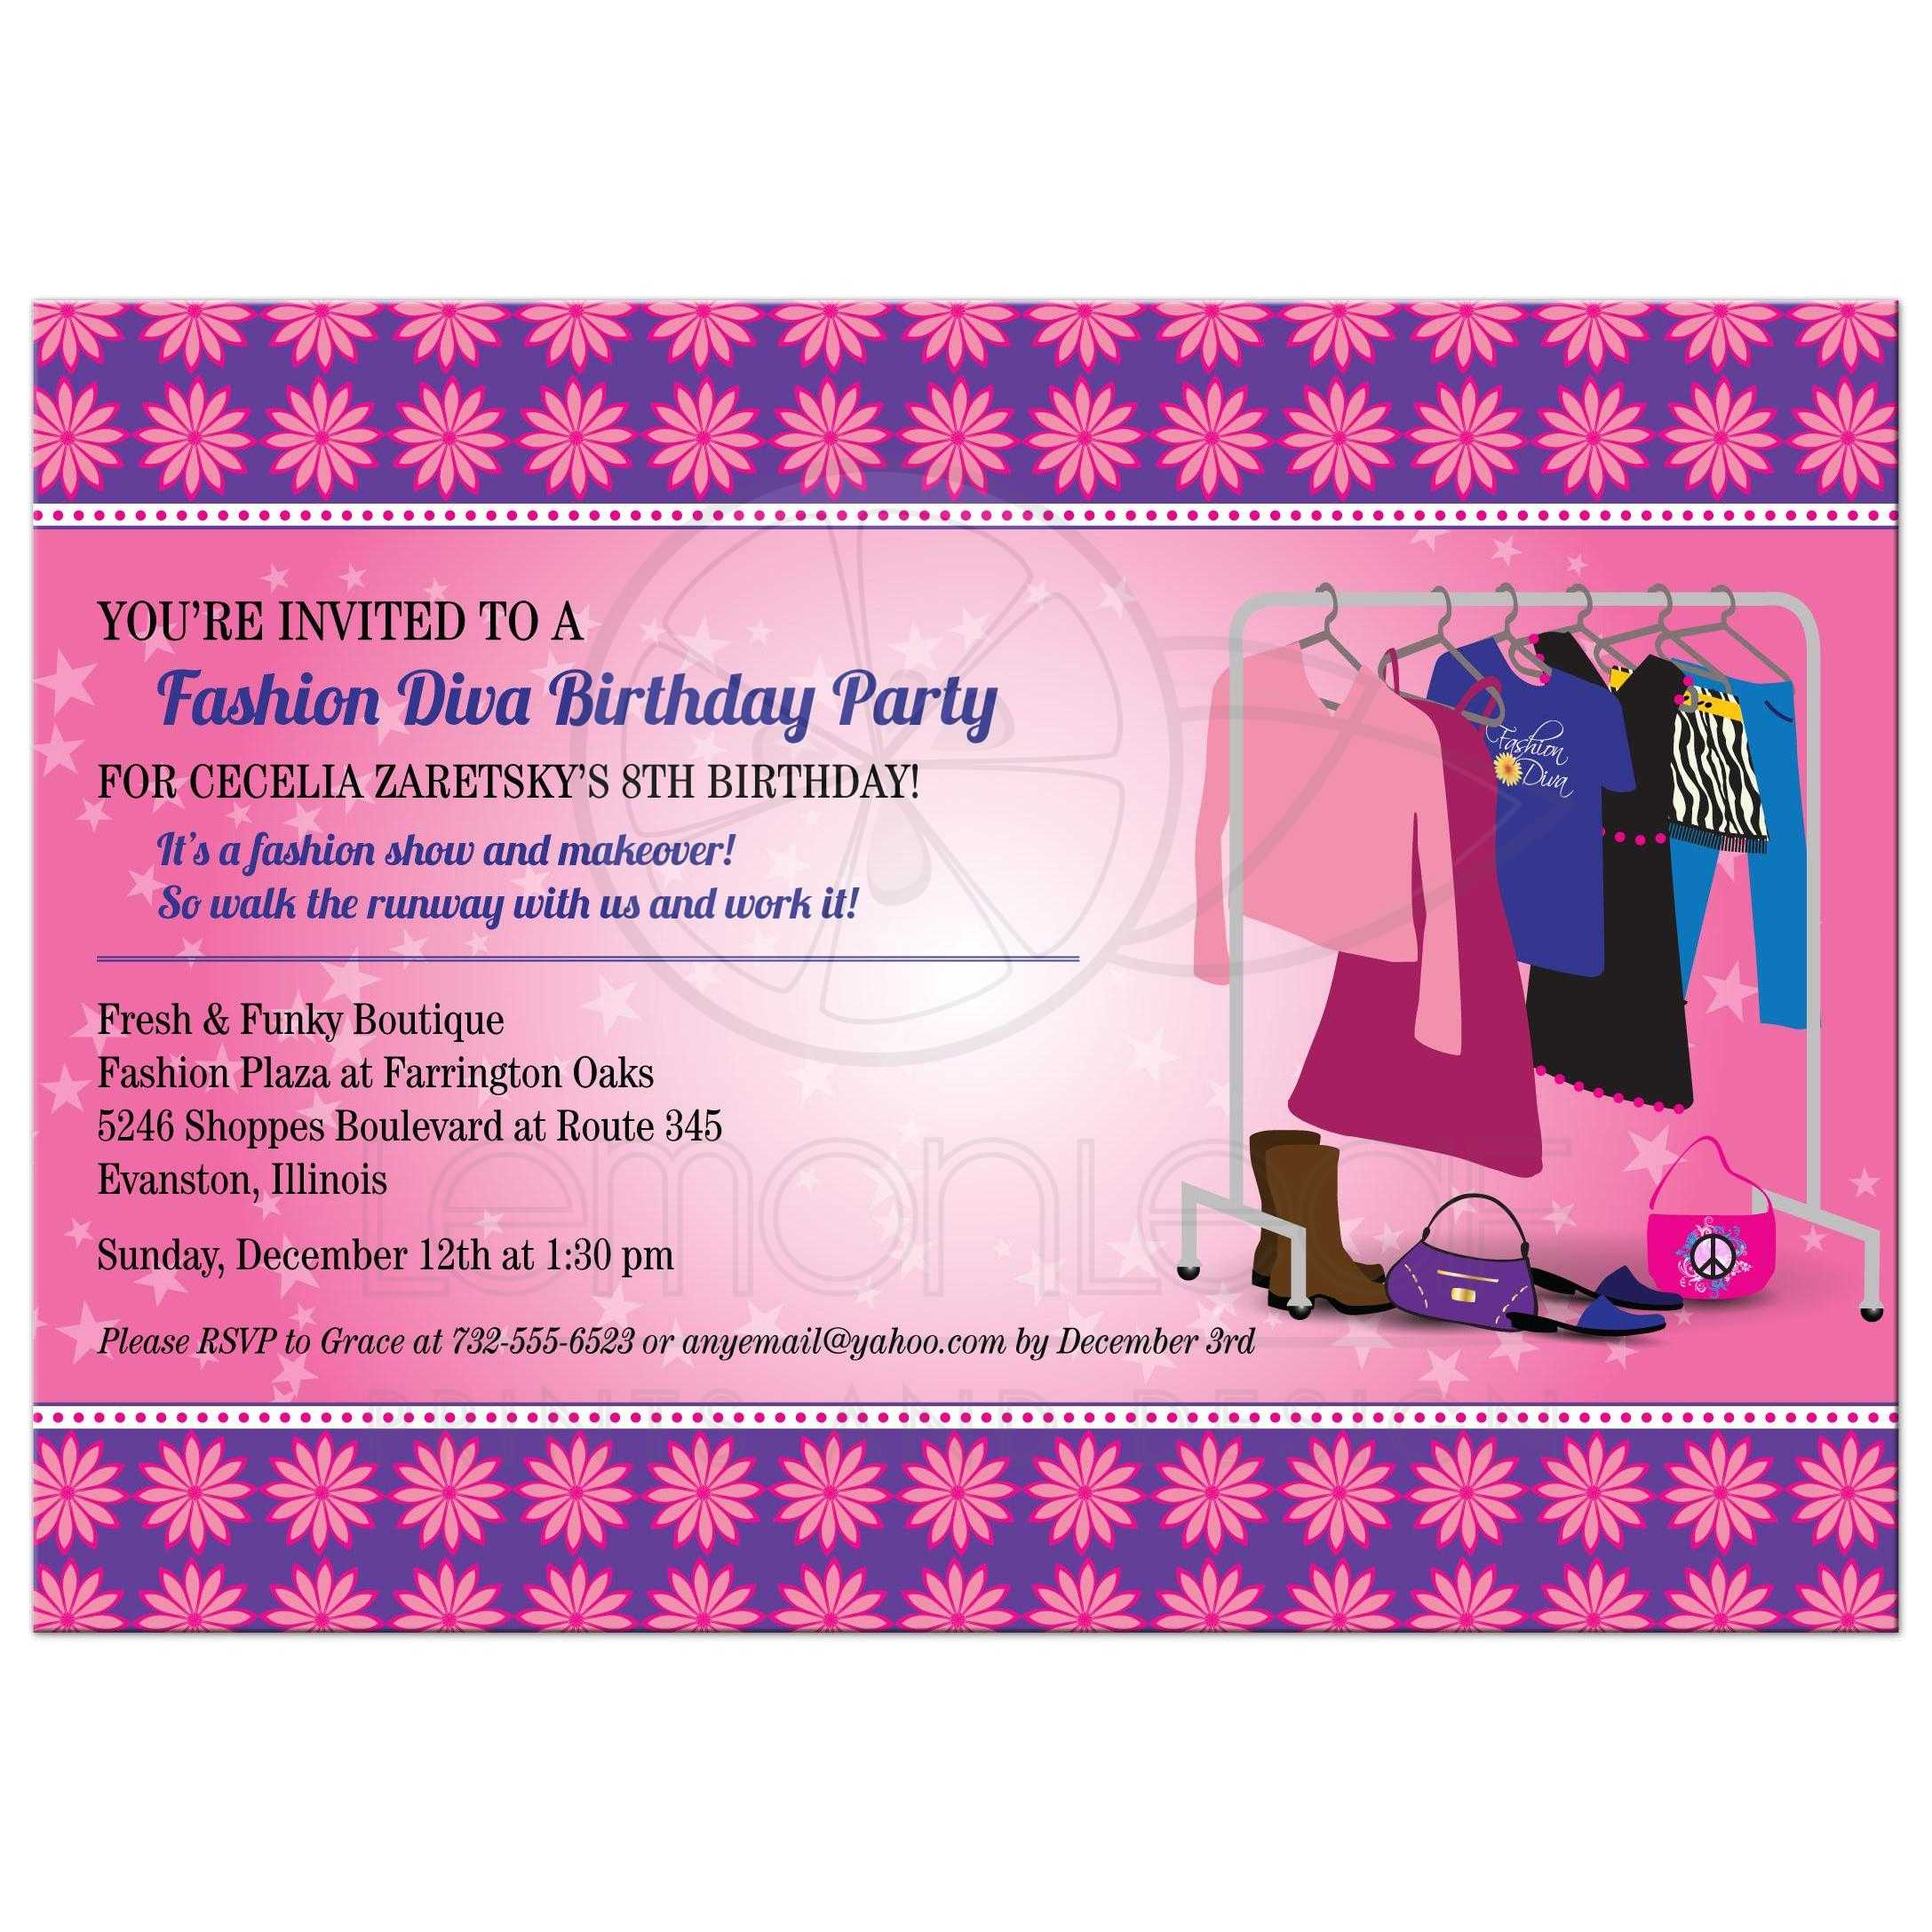 Fashion Show Party Invitations Gallery - Party Invitations Ideas